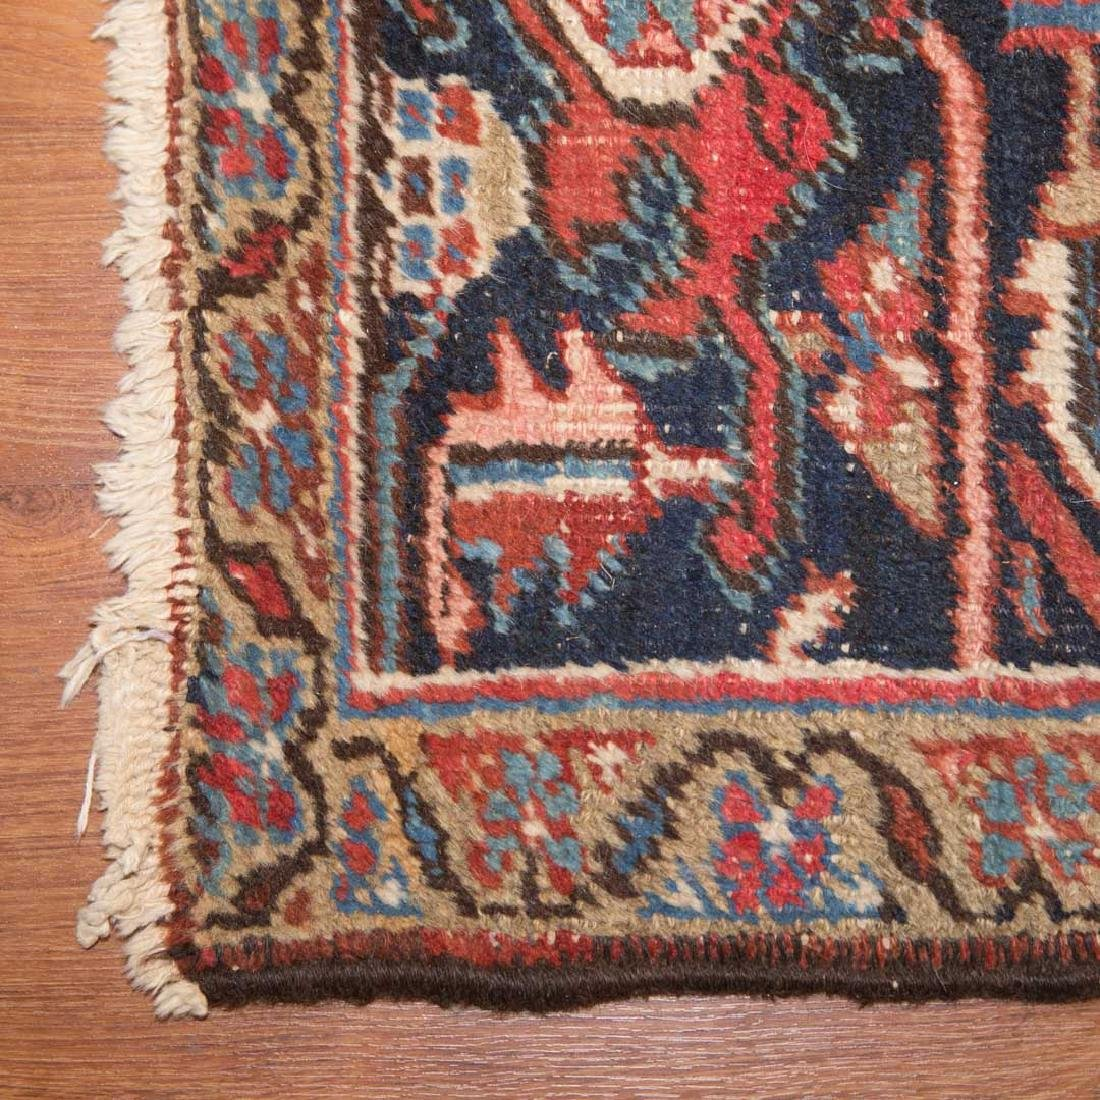 Persian Herez rug, approx. 9.10 x 18.5 - 2